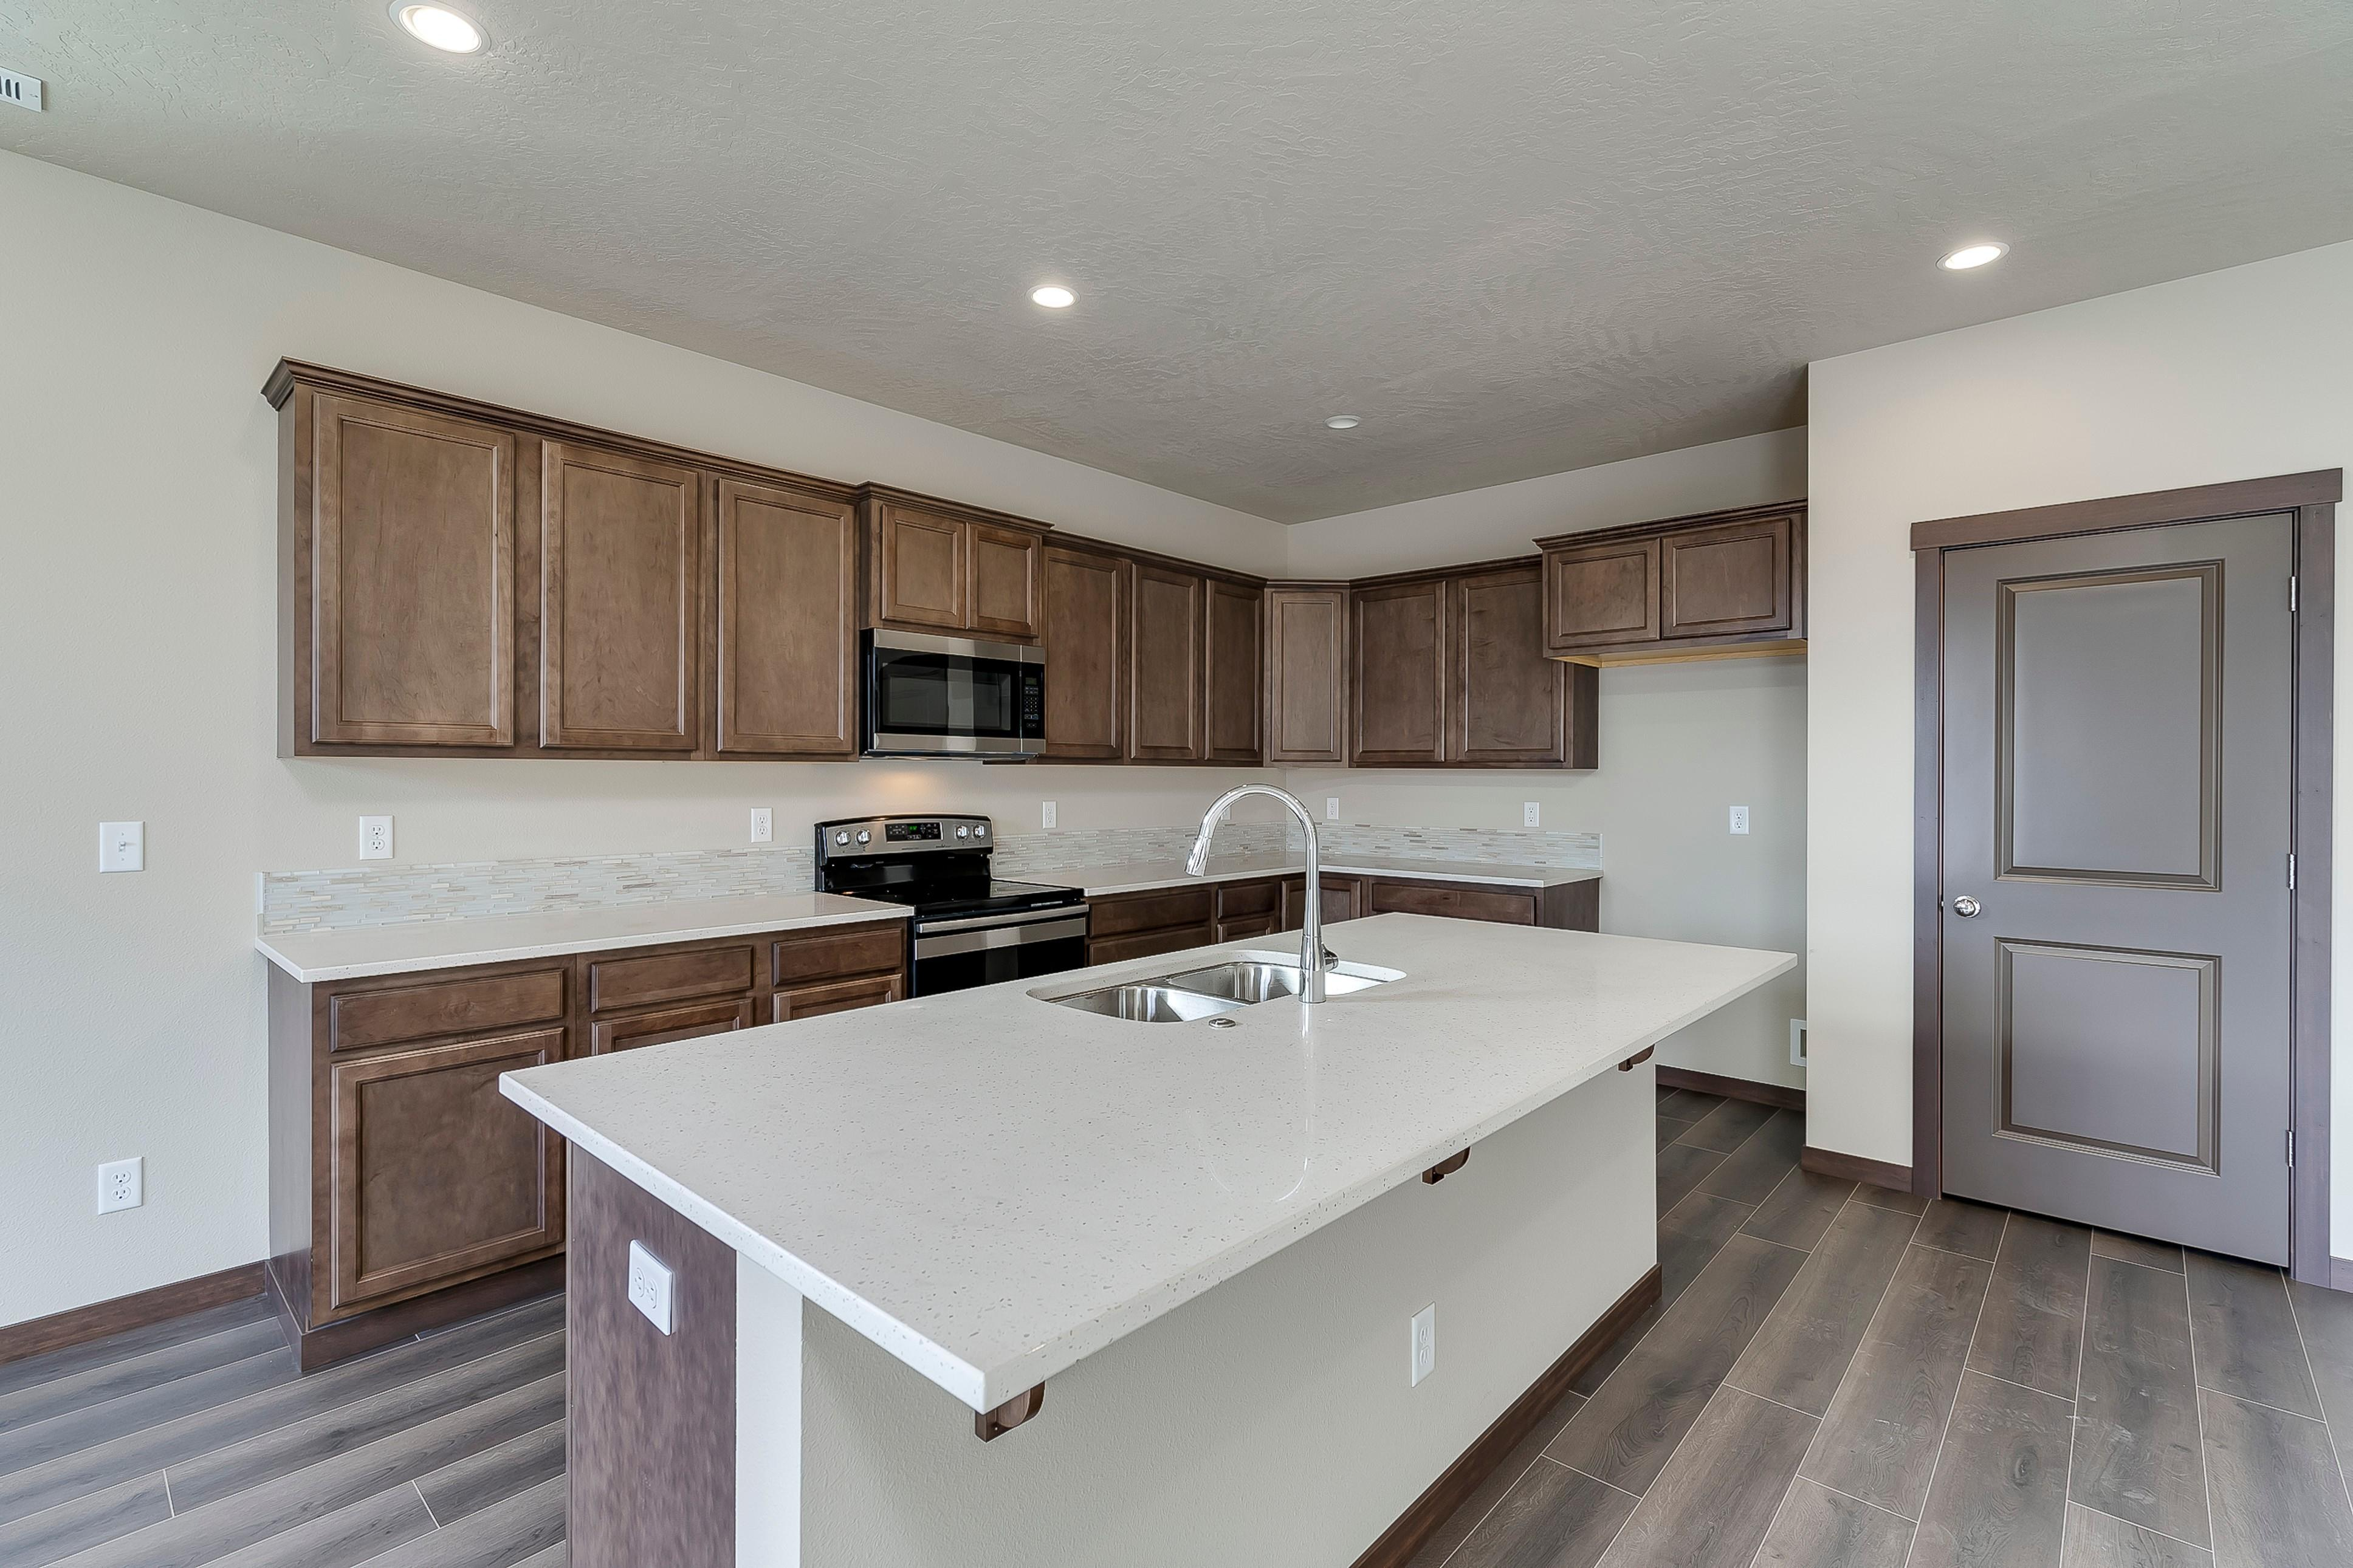 Kitchen featured in the Caribou - Prairie By Painted Rock Homes in Spokane-Couer d Alene, ID